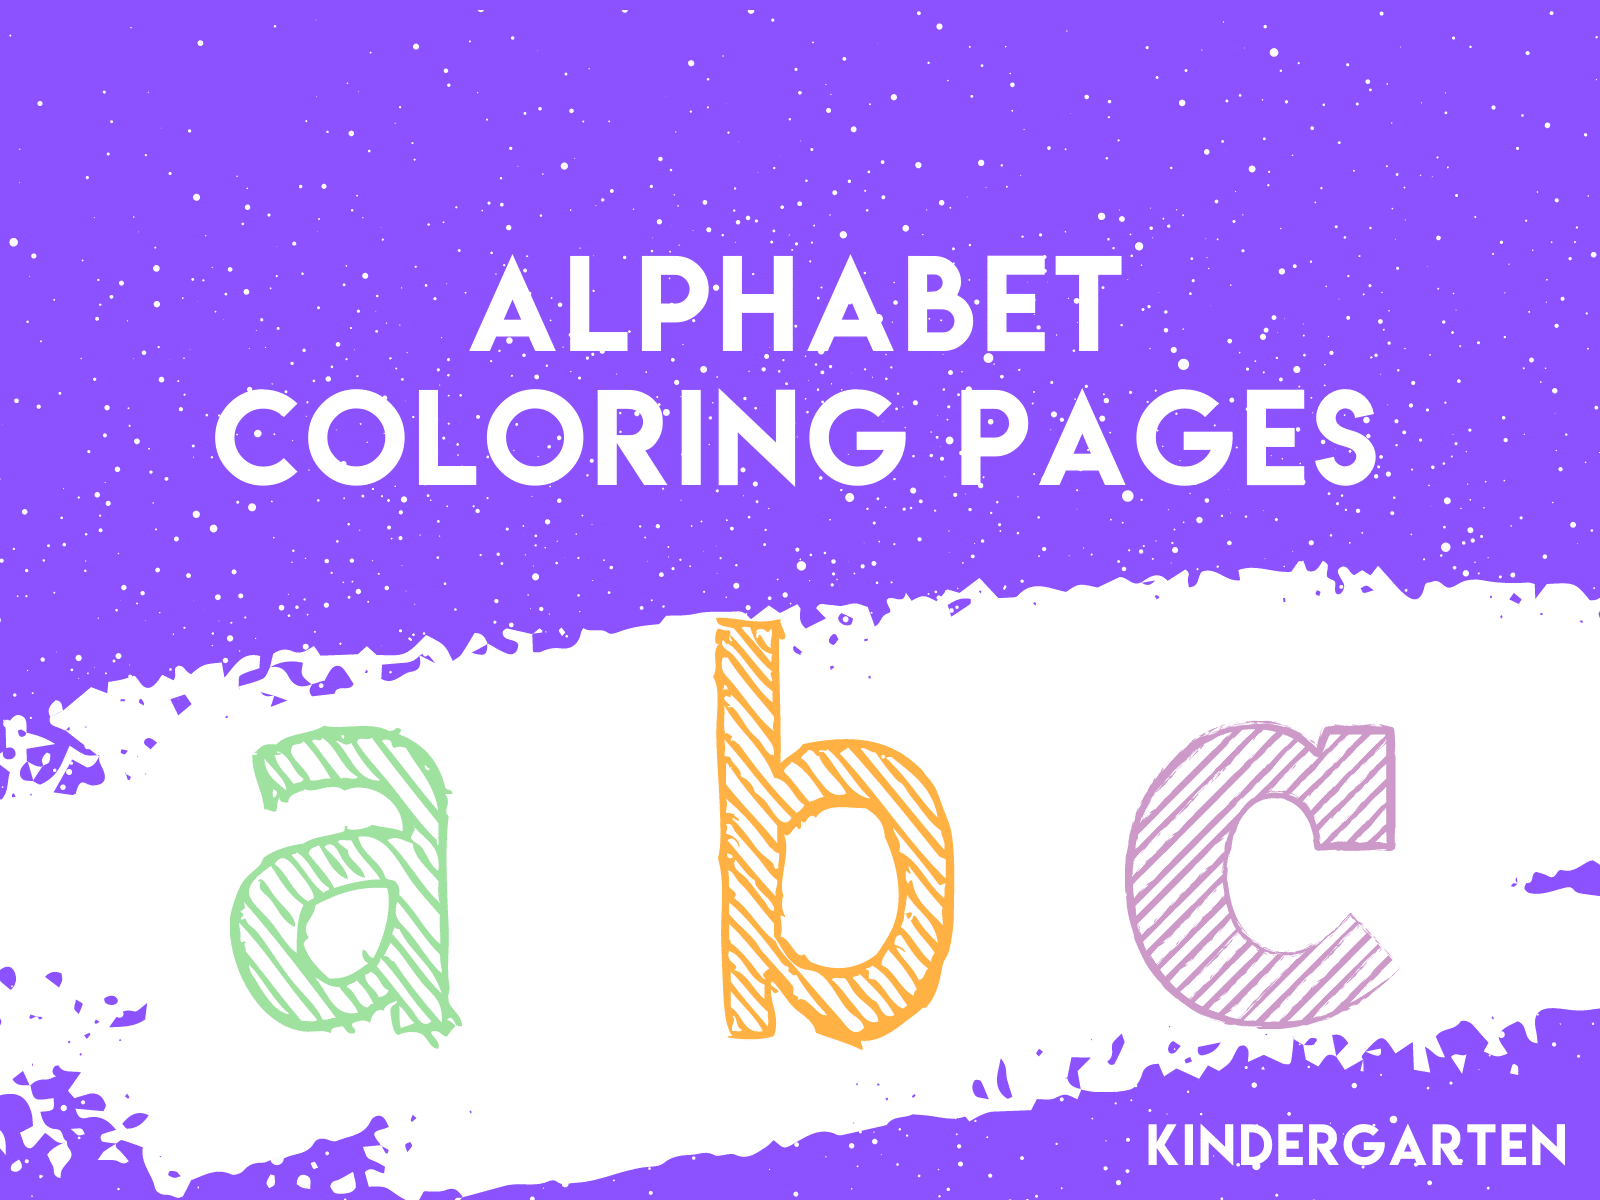 Alphabet coloring pages are a great way to introduce letter writing basics to kindergarteners.